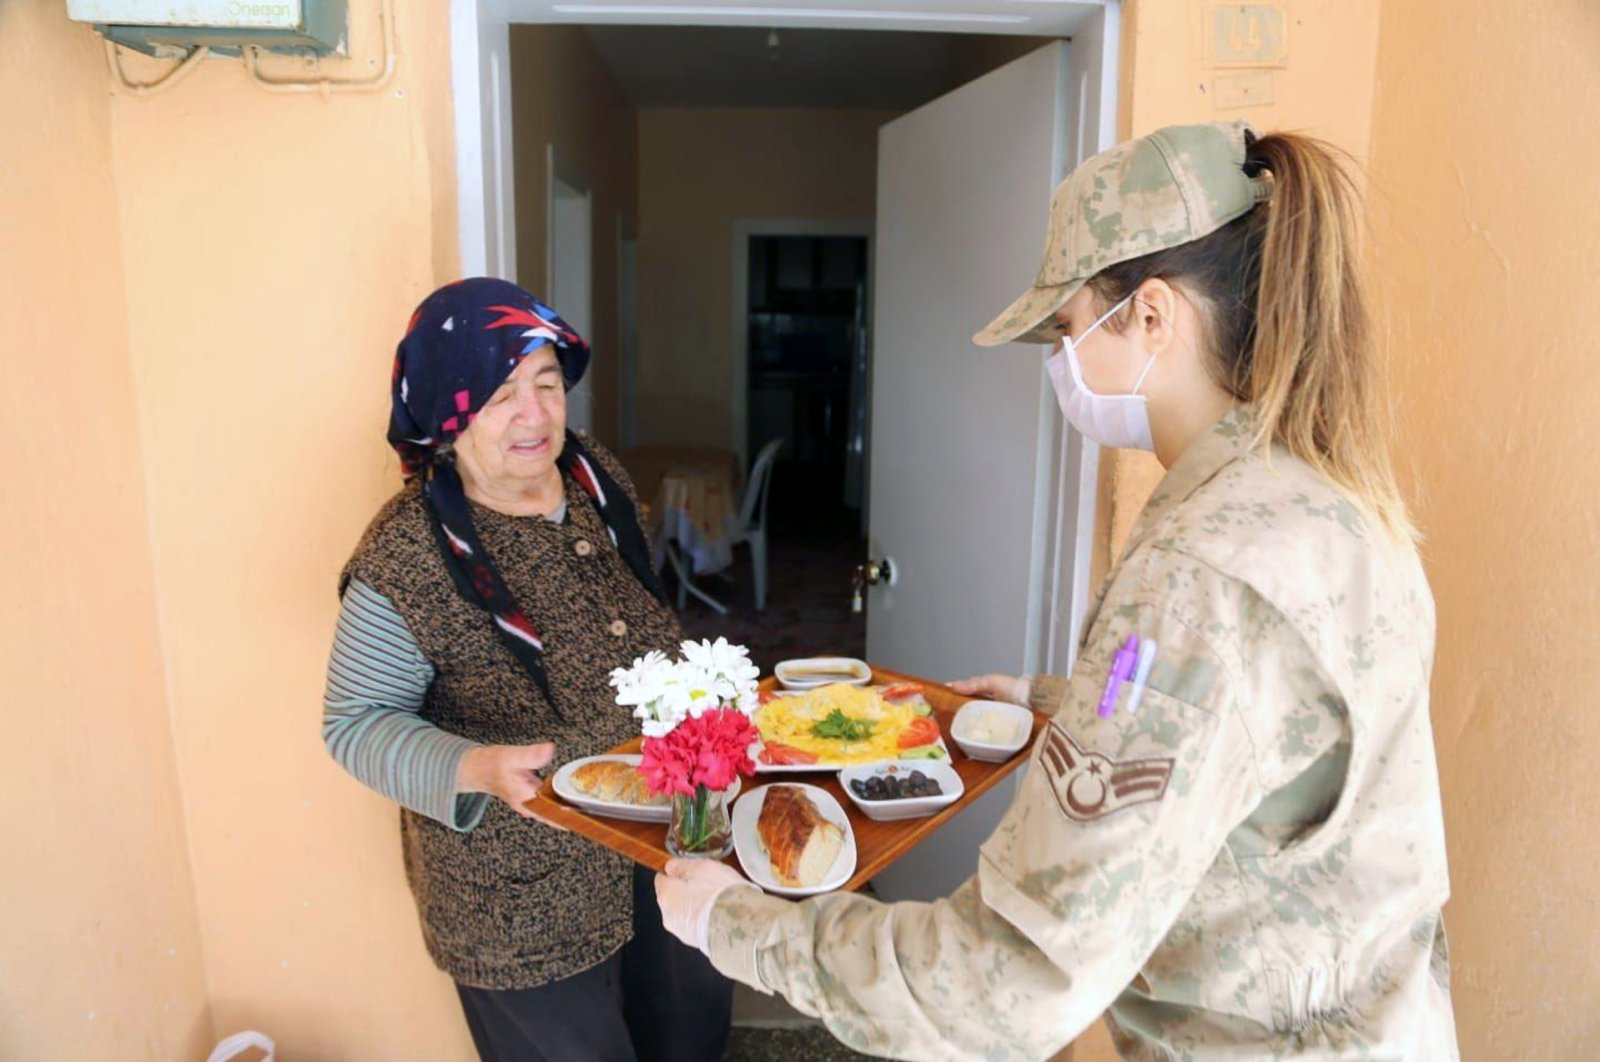 A military officer, a member of a Vefa group, delivers breakfast to an elderly woman, in Tunceli, eastern Turkey, April 14, 2020. (AA PHOTO)